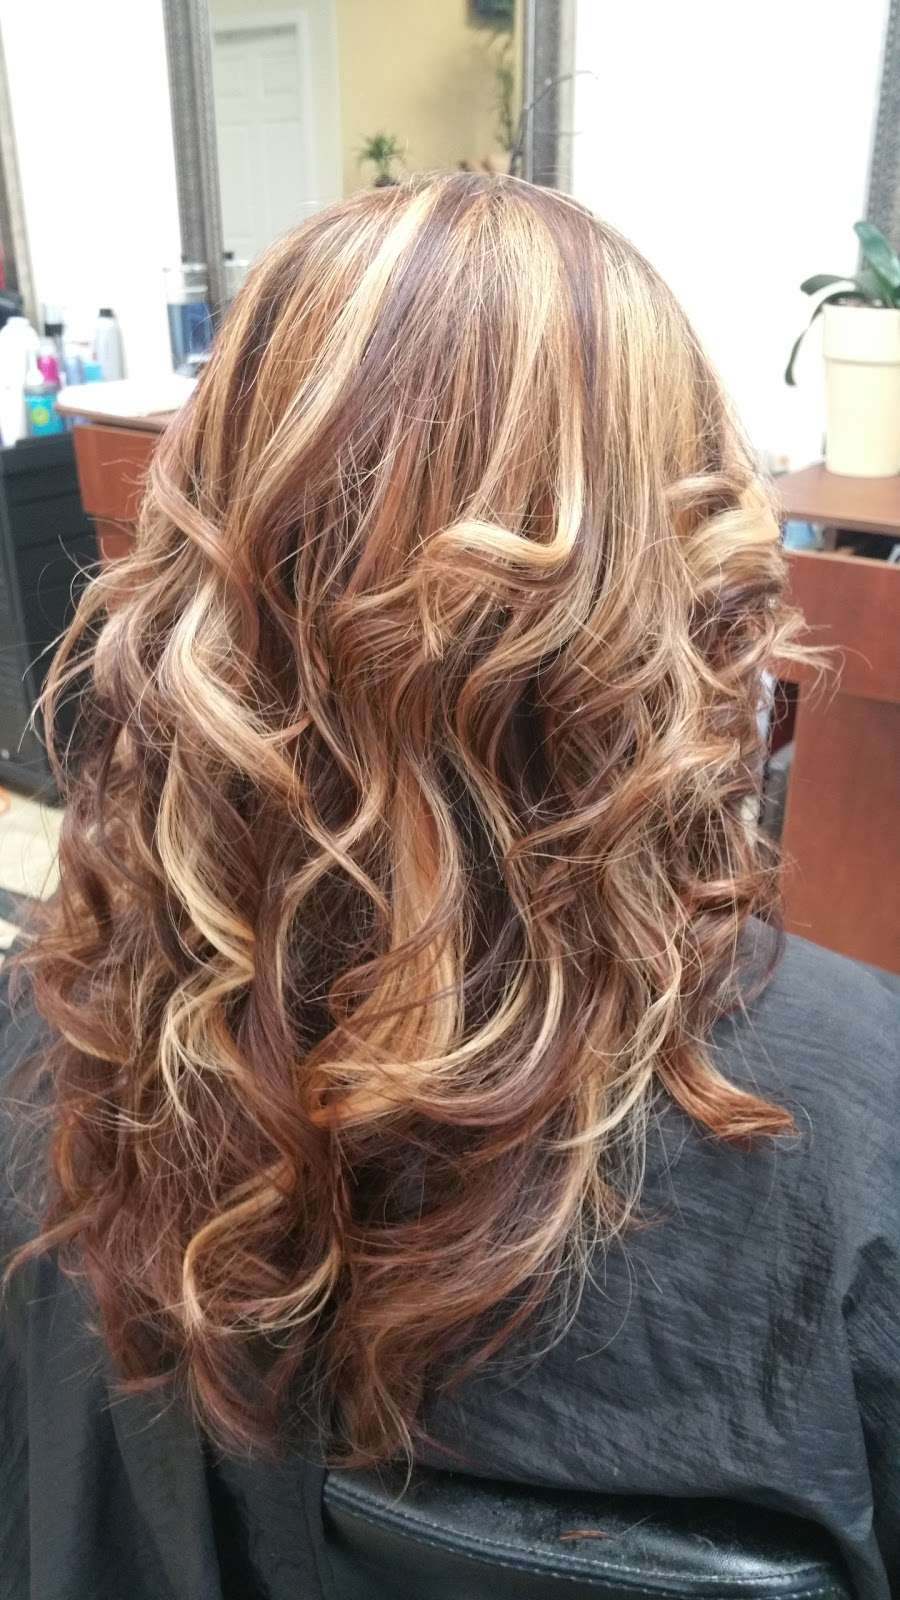 Pro Touch Salon - hair care    Photo 7 of 10   Address: 2746 Manvel Rd, Pearland, TX 77584, USA   Phone: (281) 997-7277